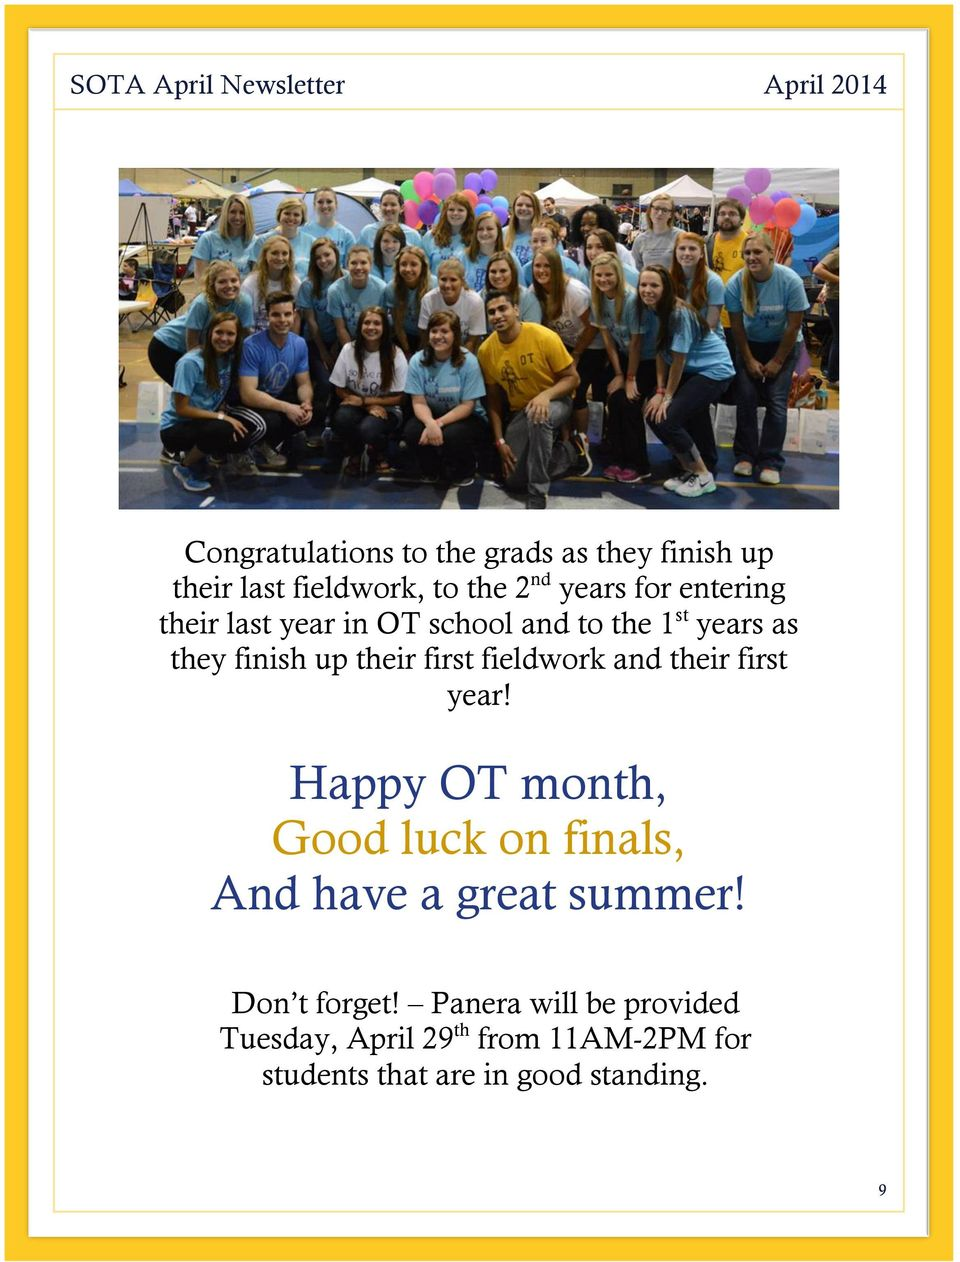 fieldwork and their first year! Happy OT month, Good luck on finals, And have a great summer!